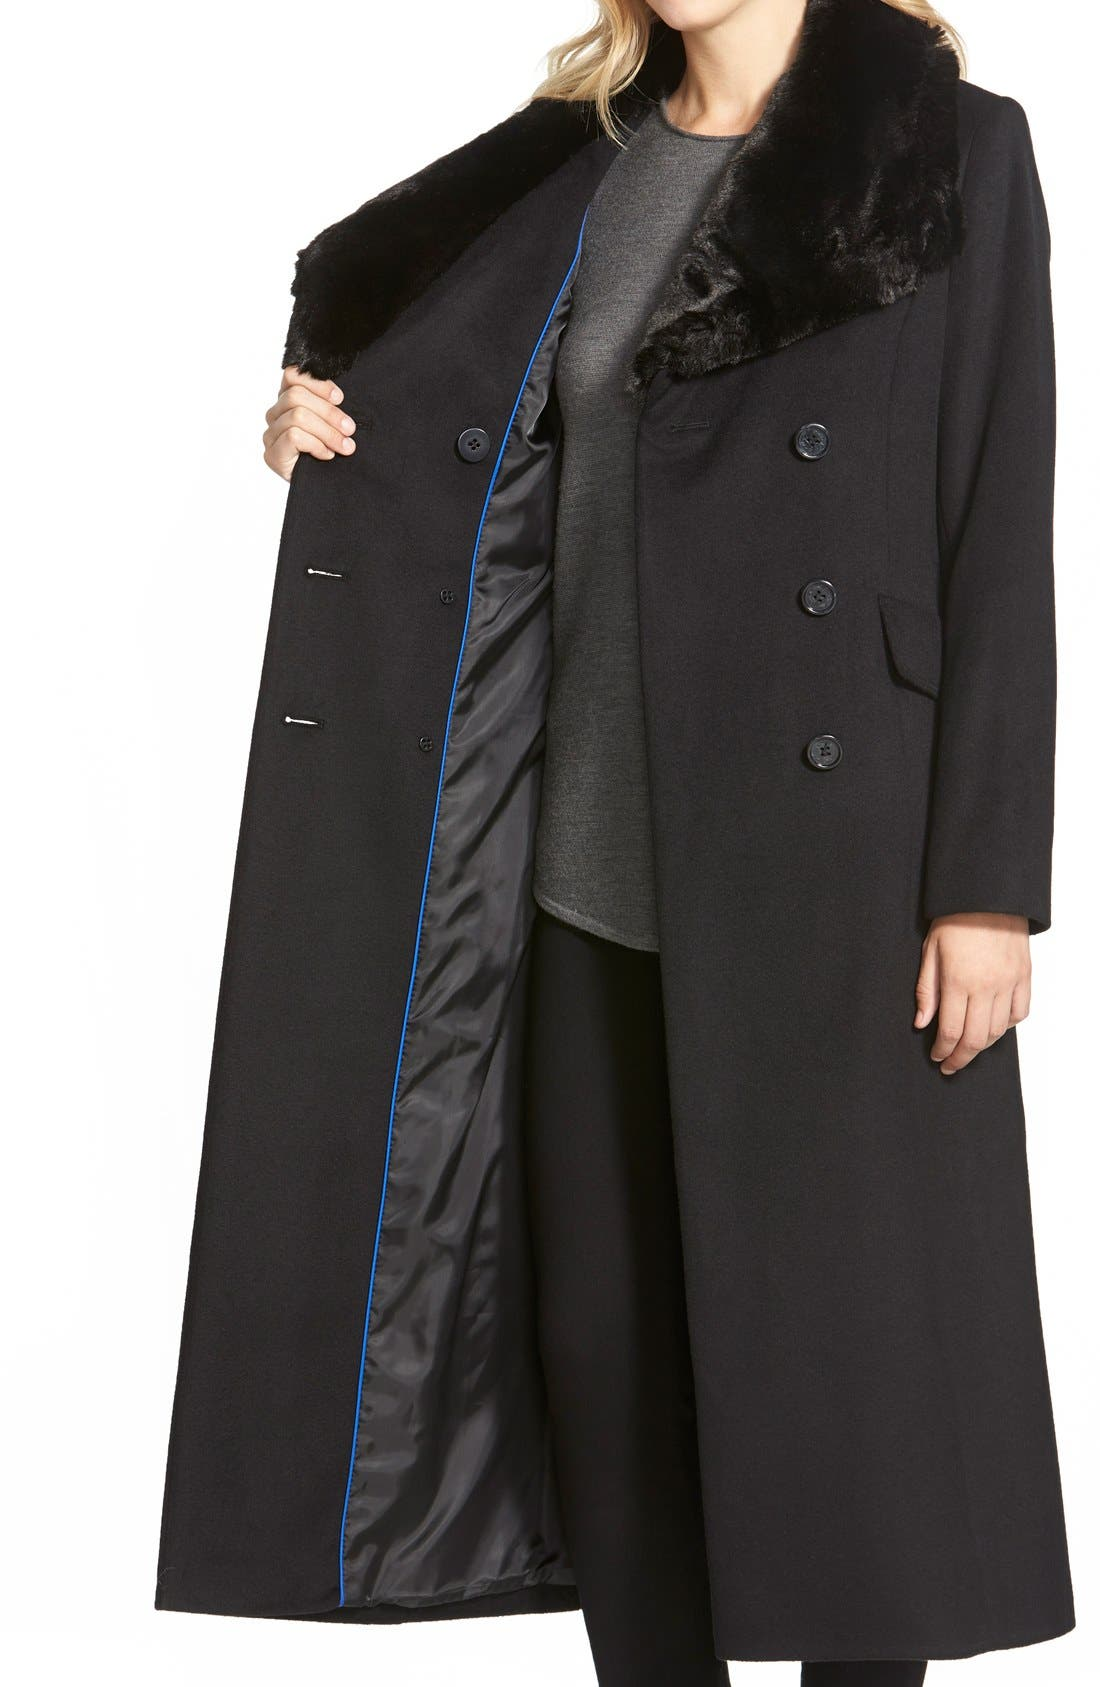 Long Wool Blend Coat with Faux Fur Collar,                             Alternate thumbnail 6, color,                             001